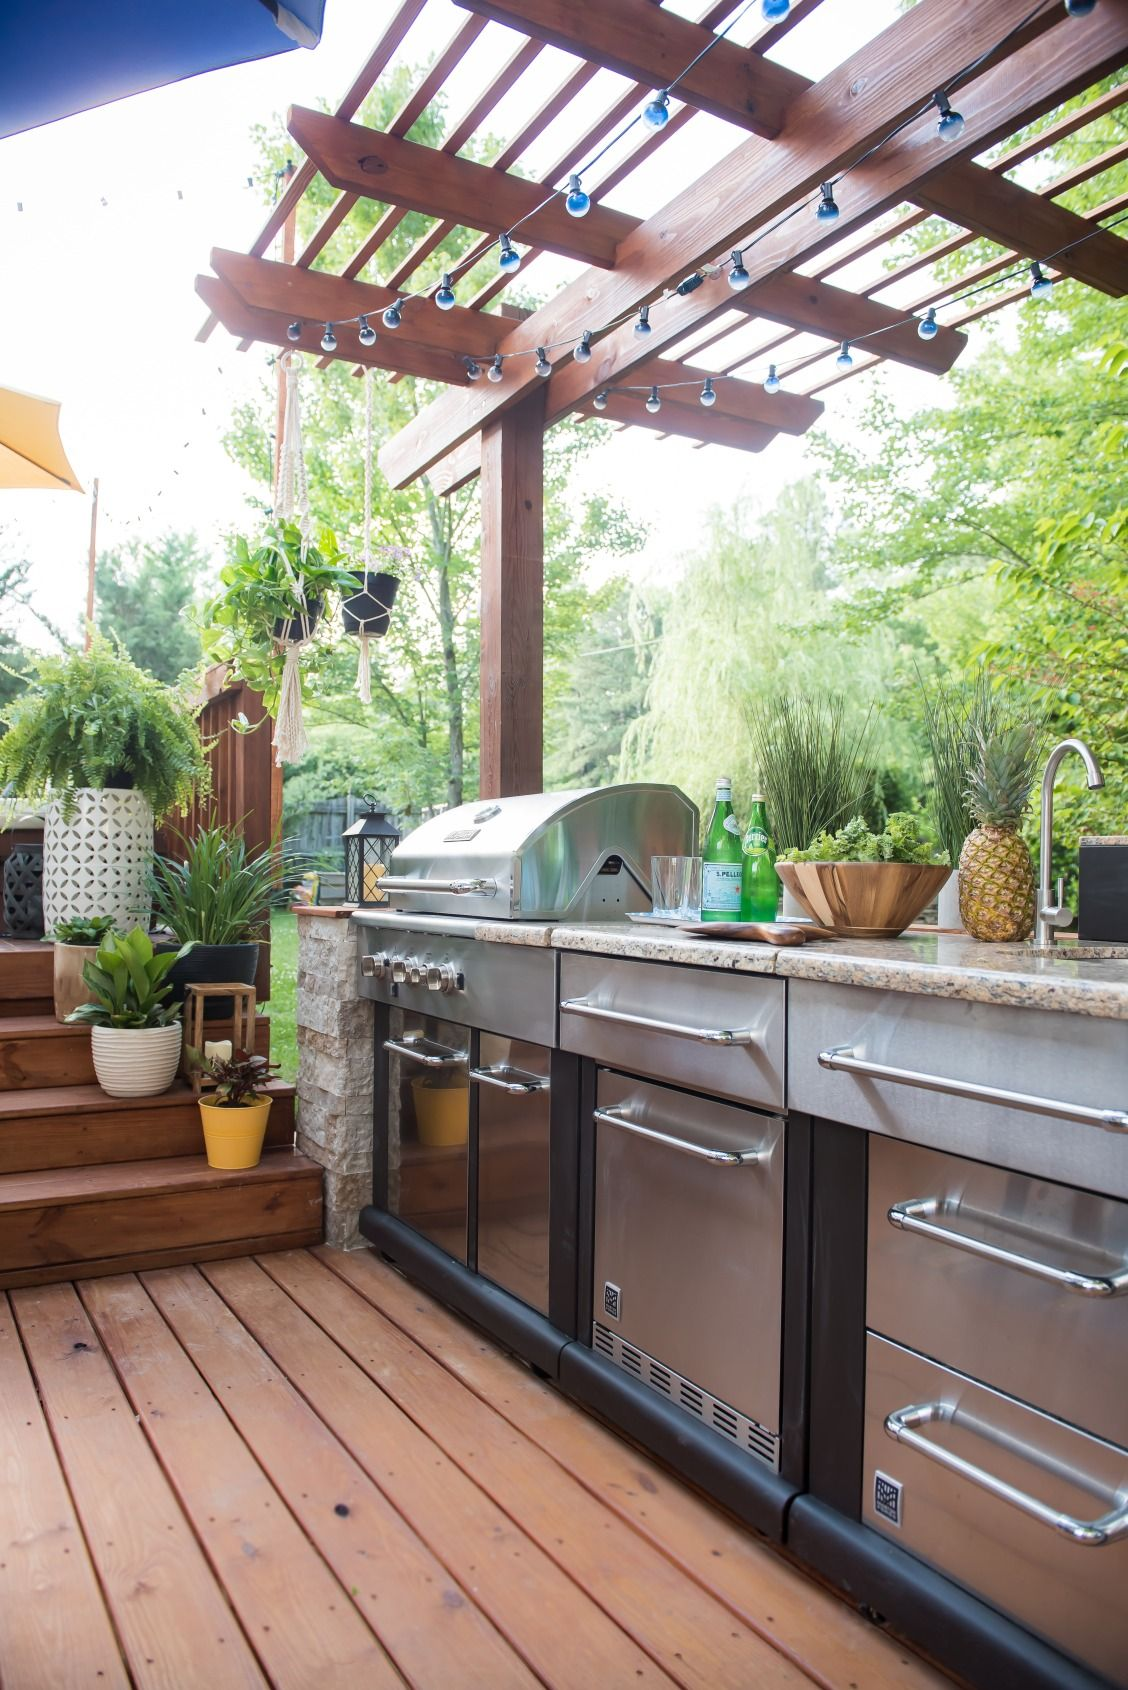 amazing outdoor kitchen you want to see outdoor kitchen design outdoor kitchen plans diy on outdoor kitchen on deck id=15979